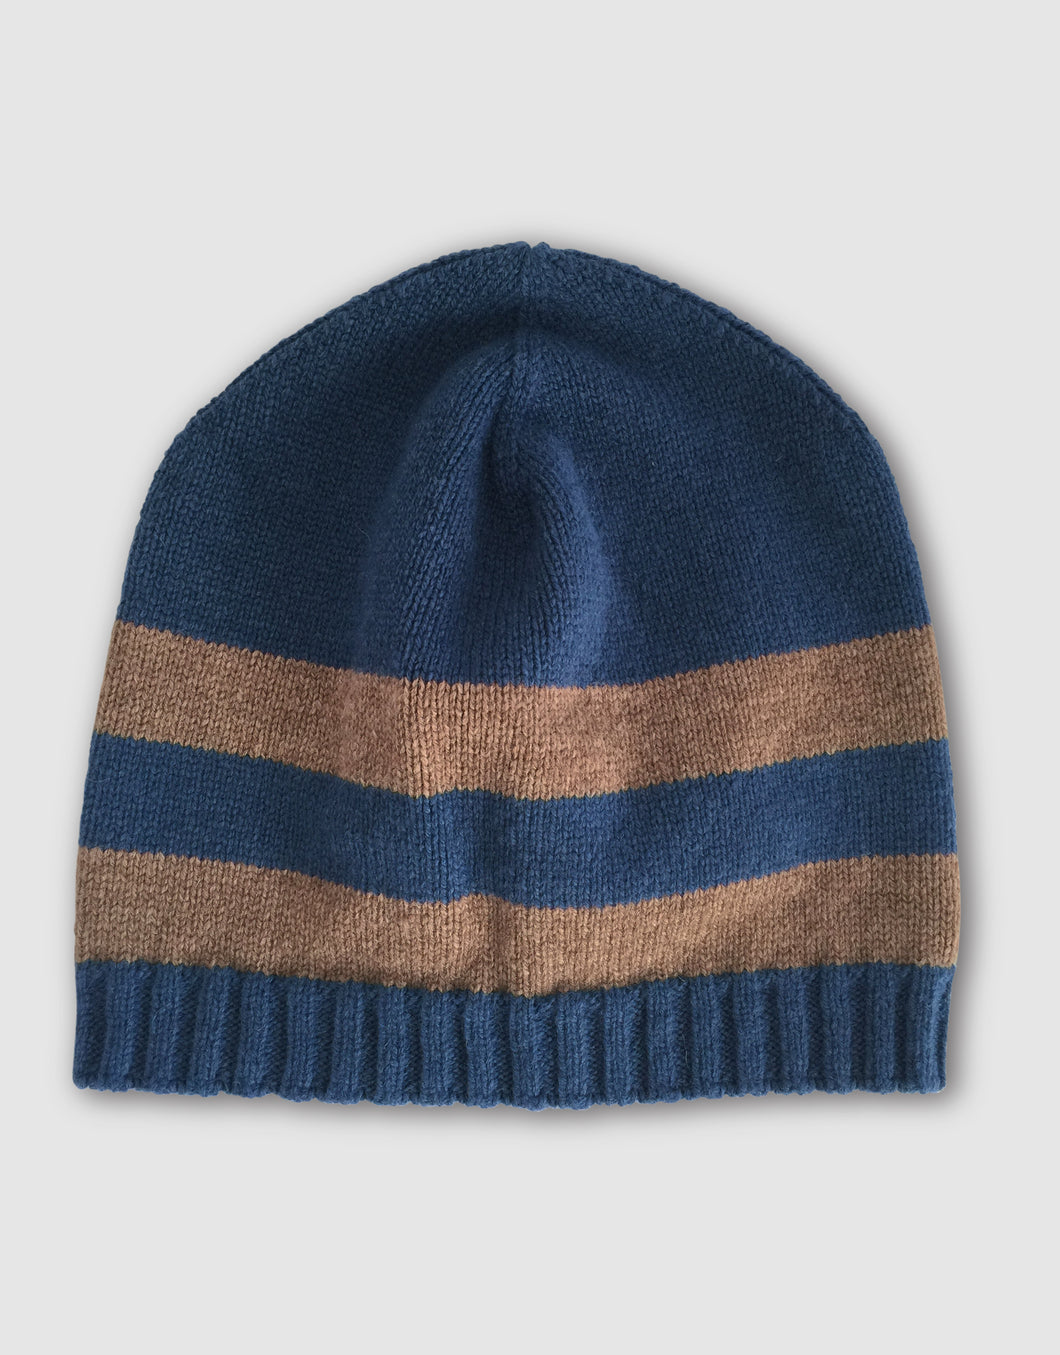 835 Striped Wool Beanie Hat, Denim Blue